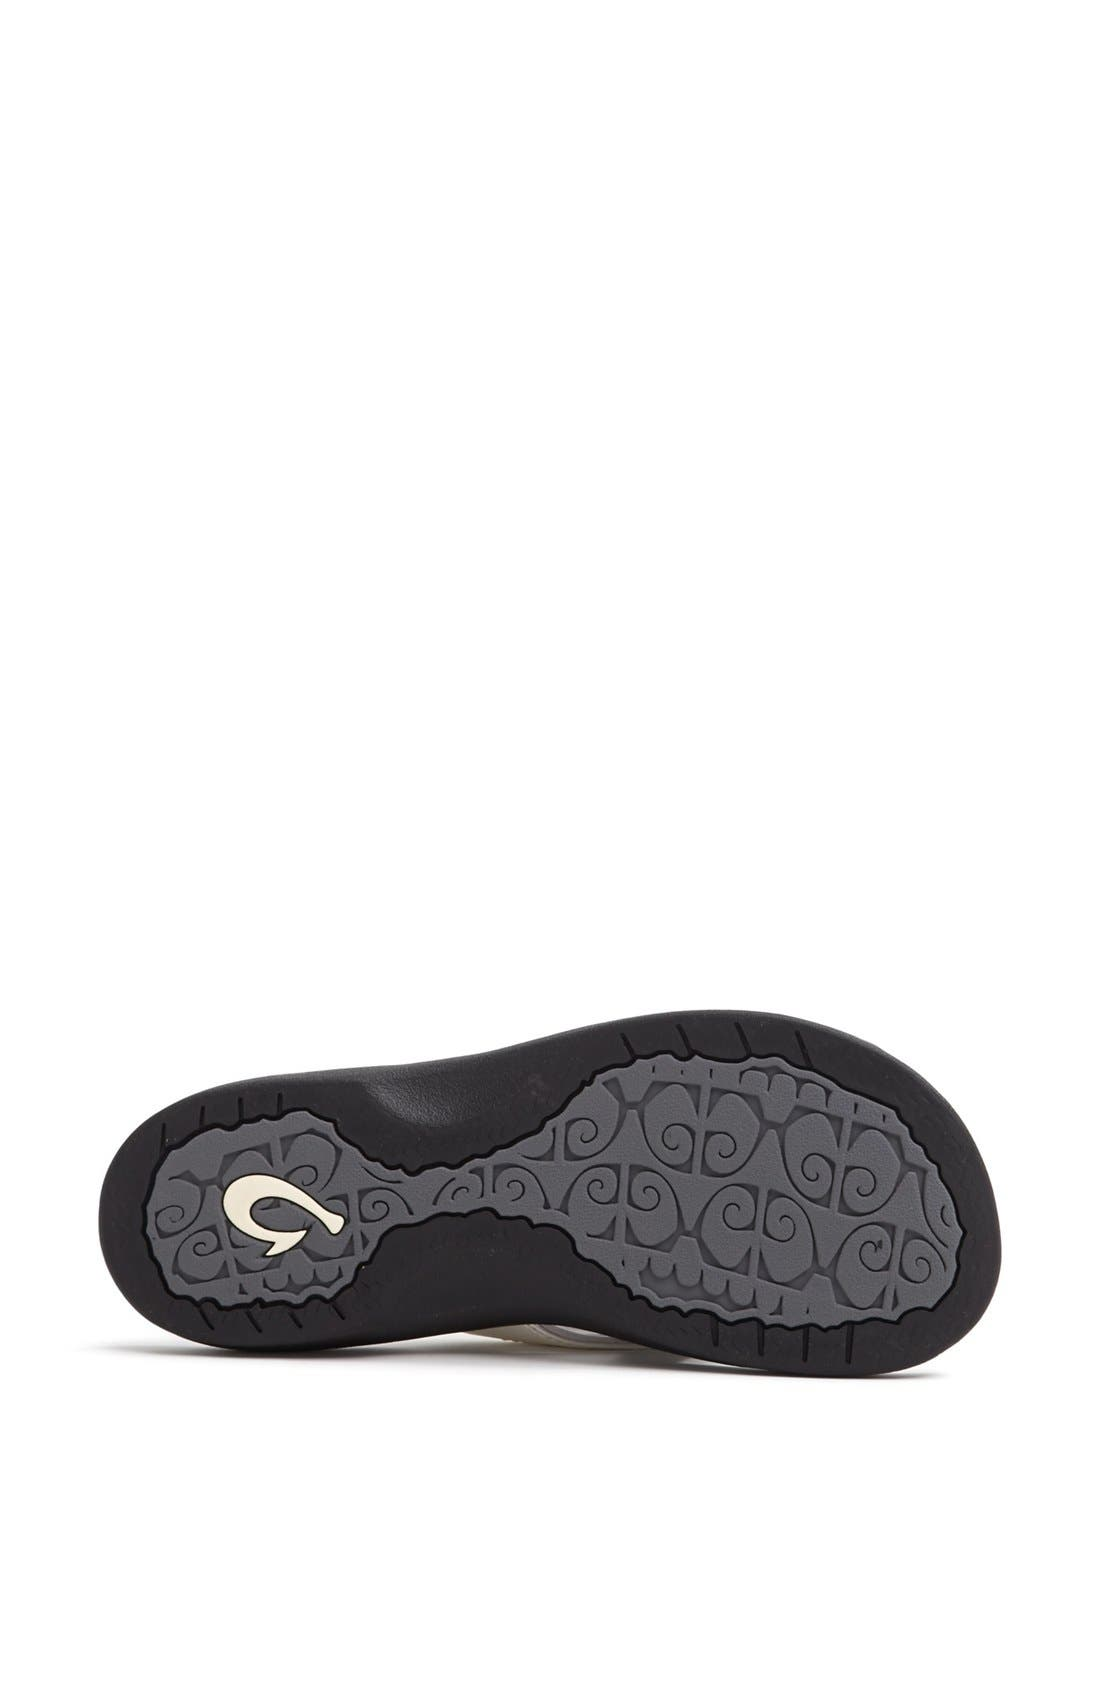 Alternate Image 4  - OluKai 'Ohana' Sandal (Women) (Regular Retail Price: $64.95)